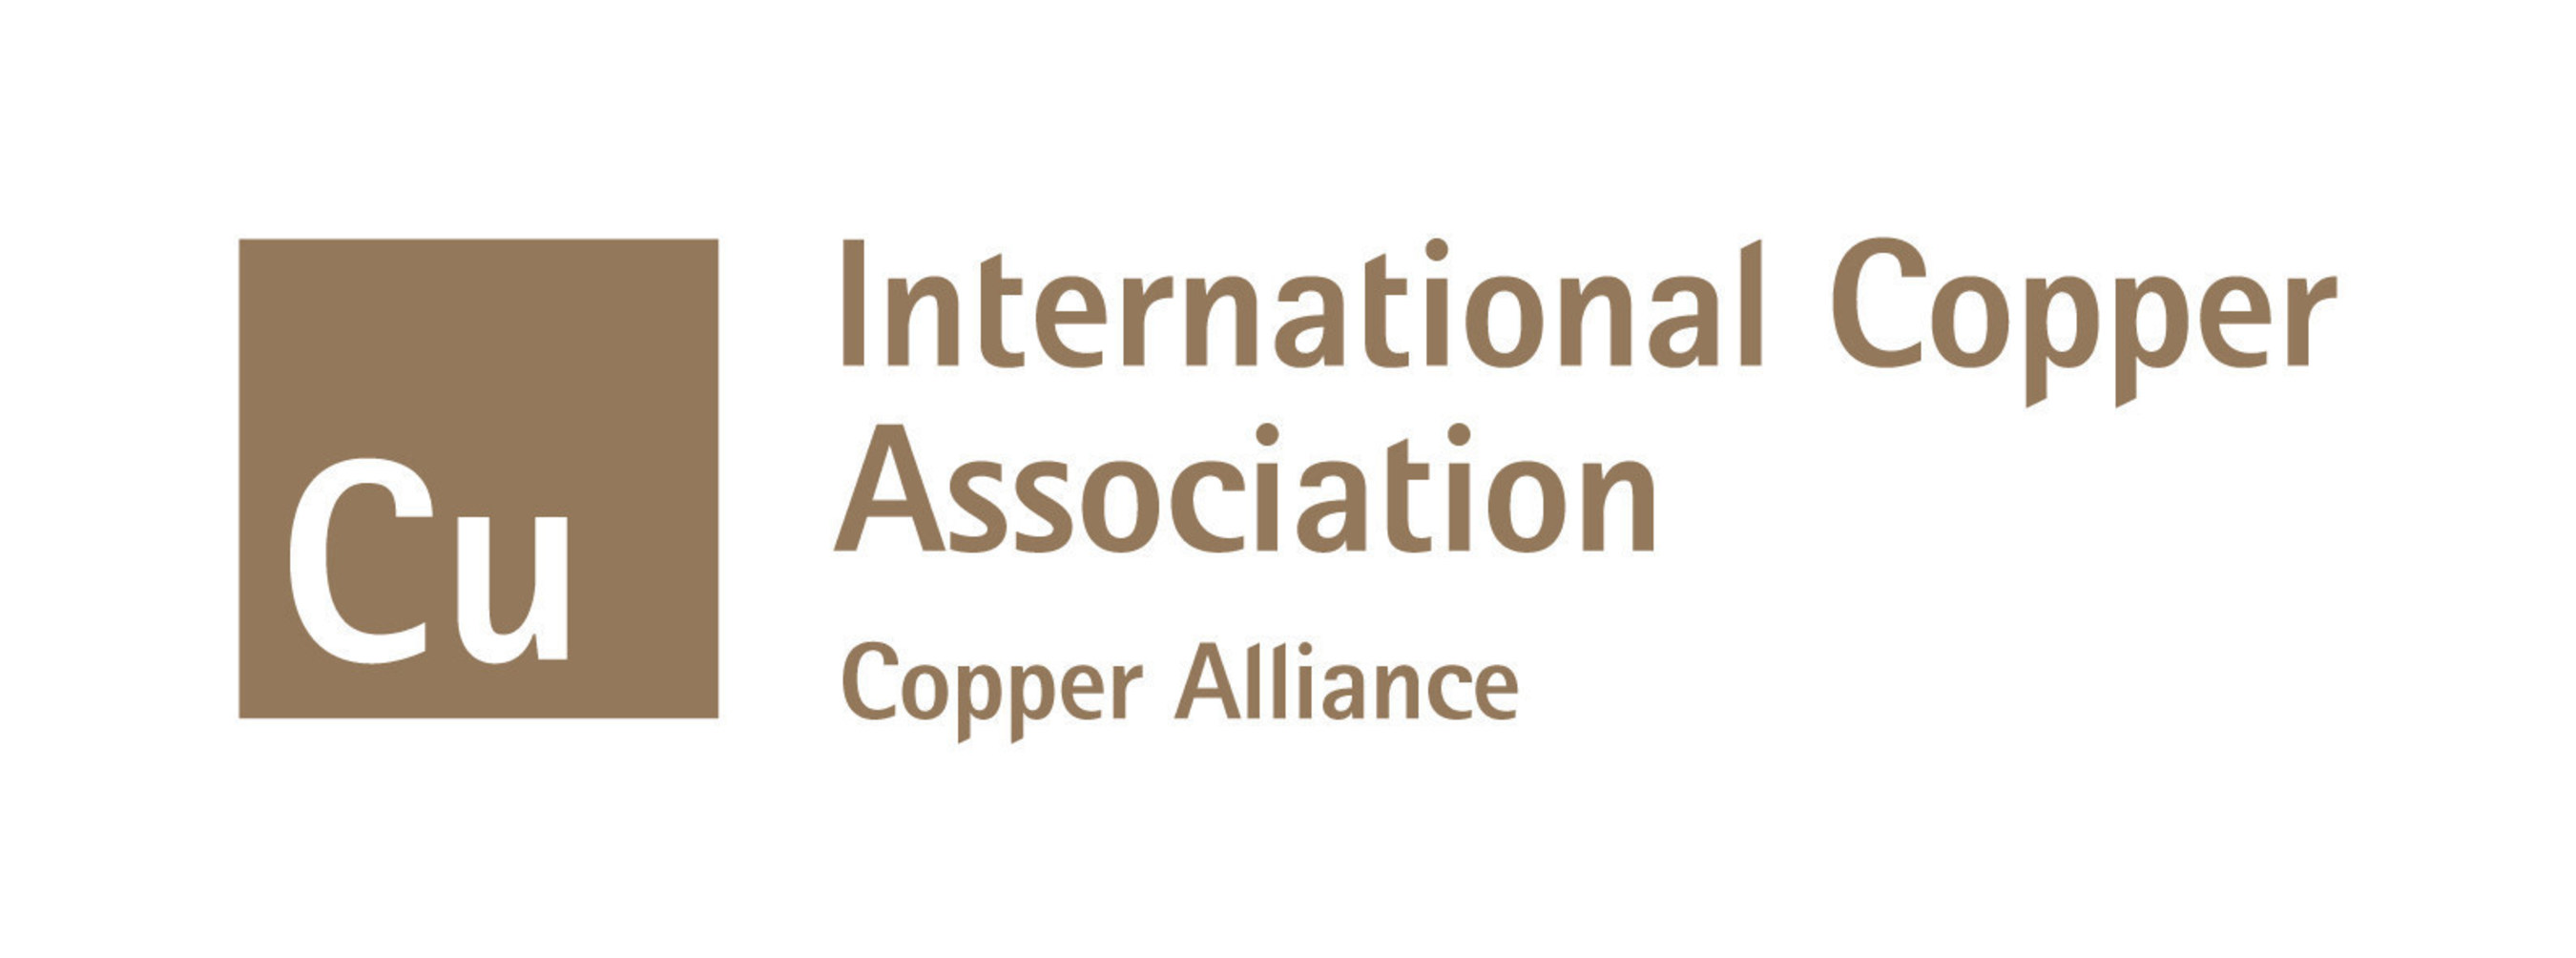 Anthony Lea será el nuevo director general de la International Copper Association